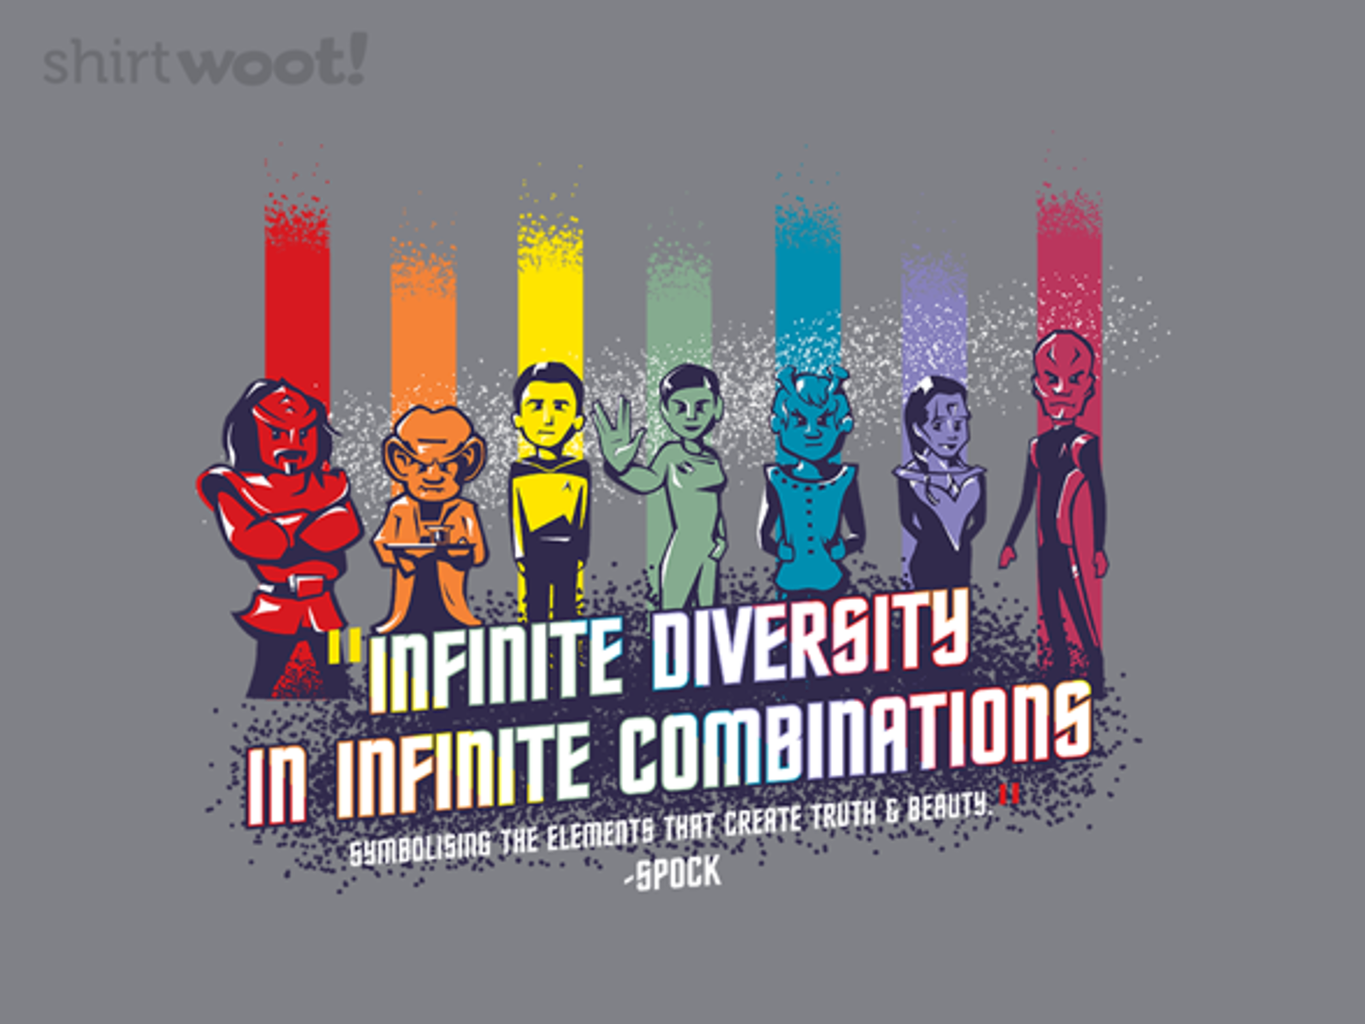 Woot!: Infinite Diversity in Infinite Combinations - $15.00 + Free shipping